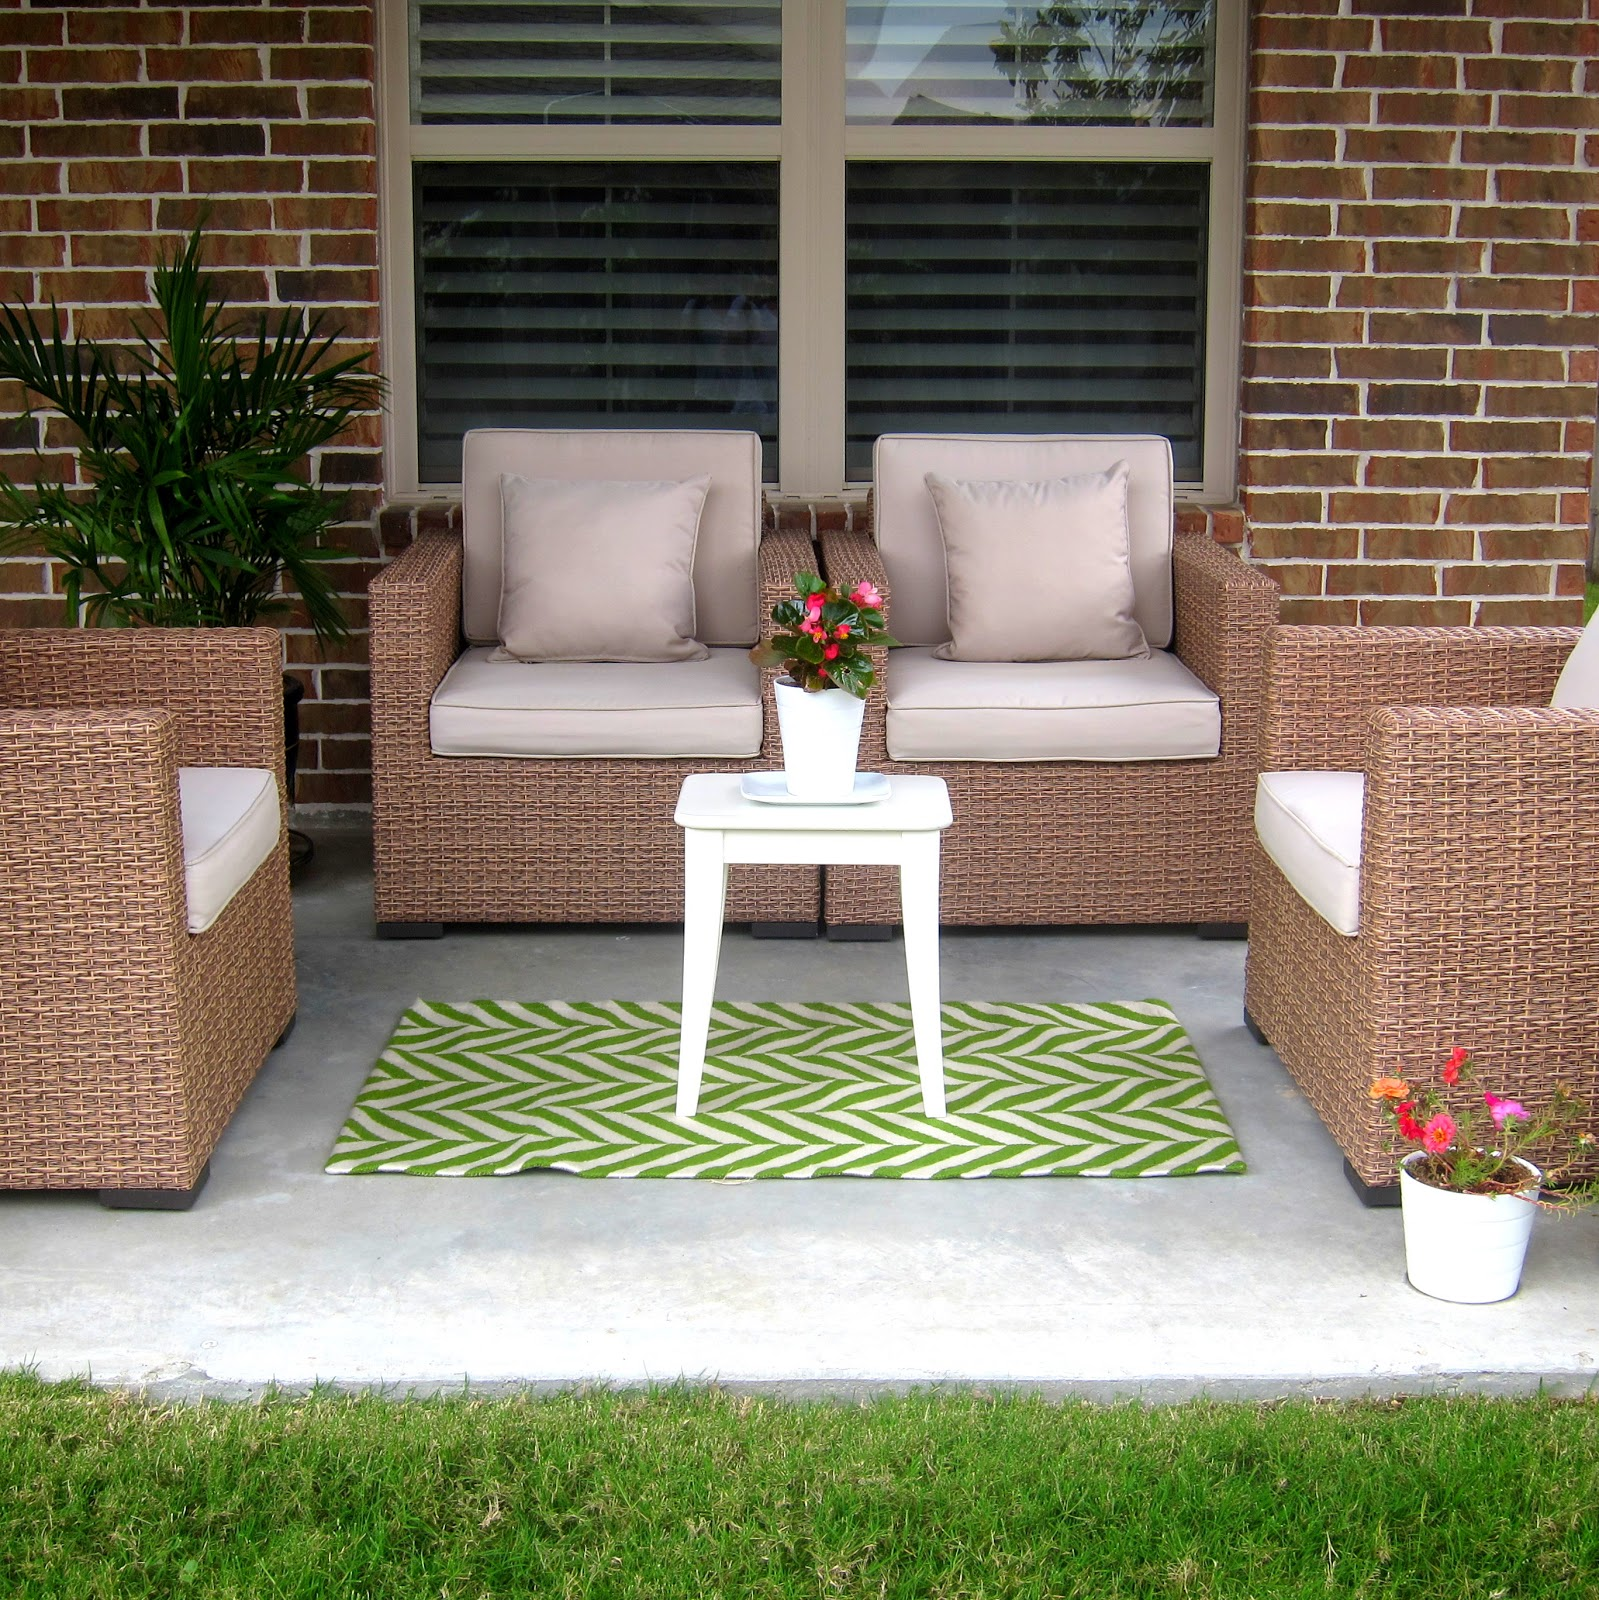 Patio rug decor ideas patio rugs elegant wicker patio furniture with cushions and  chevron AFUNSCM